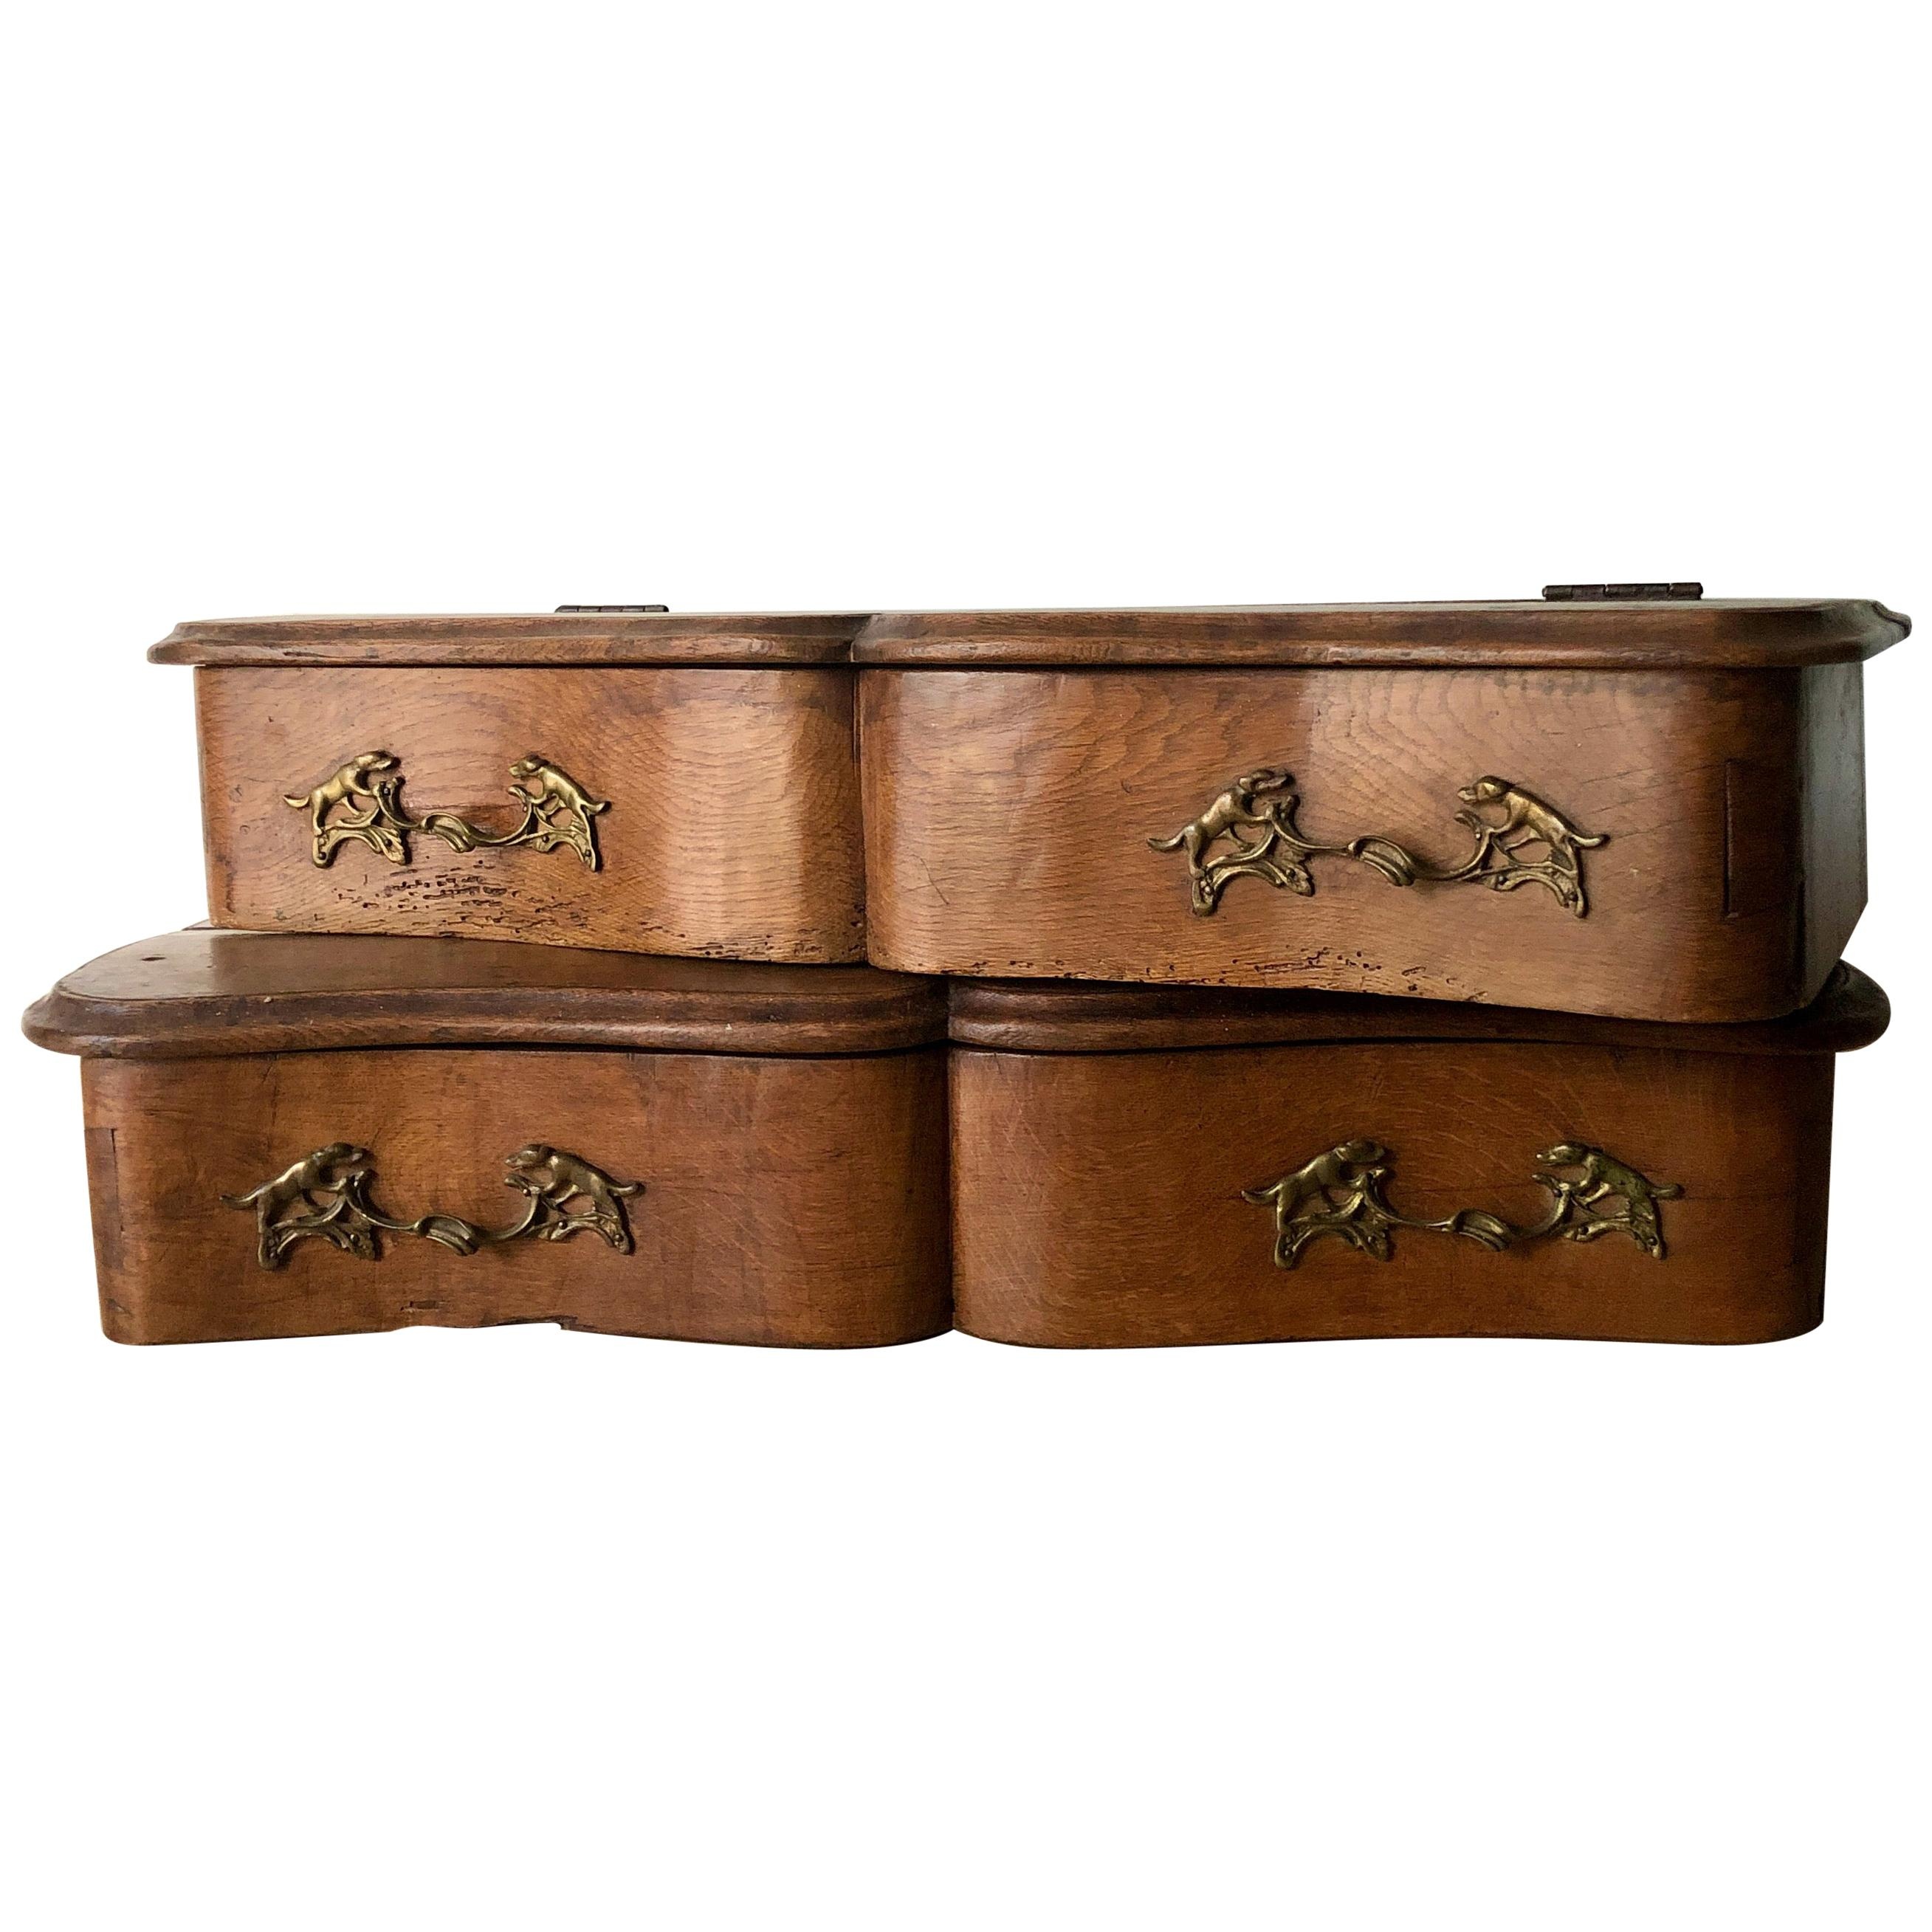 Pair of 19th Century French Oak Valet Boxes